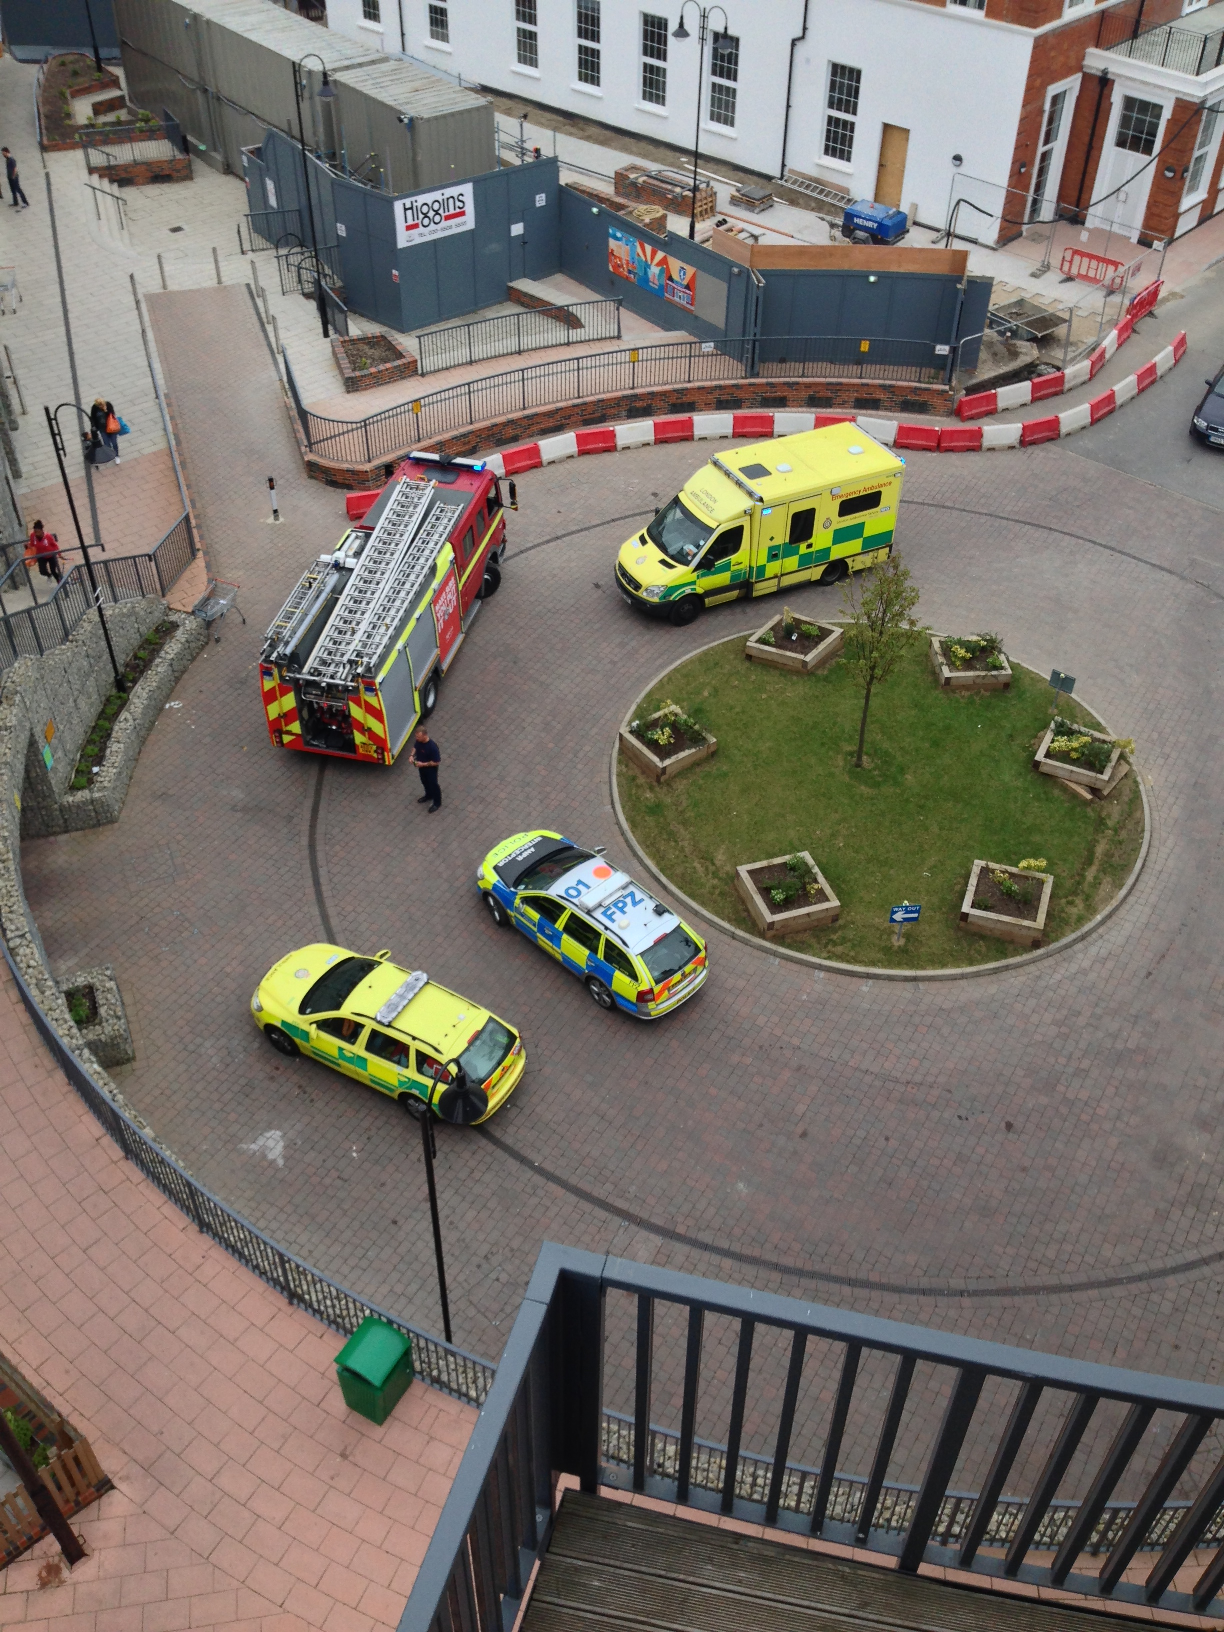 Emergency services at the Town Hall flats last Thursday (picture by Piotr Tuszynski).